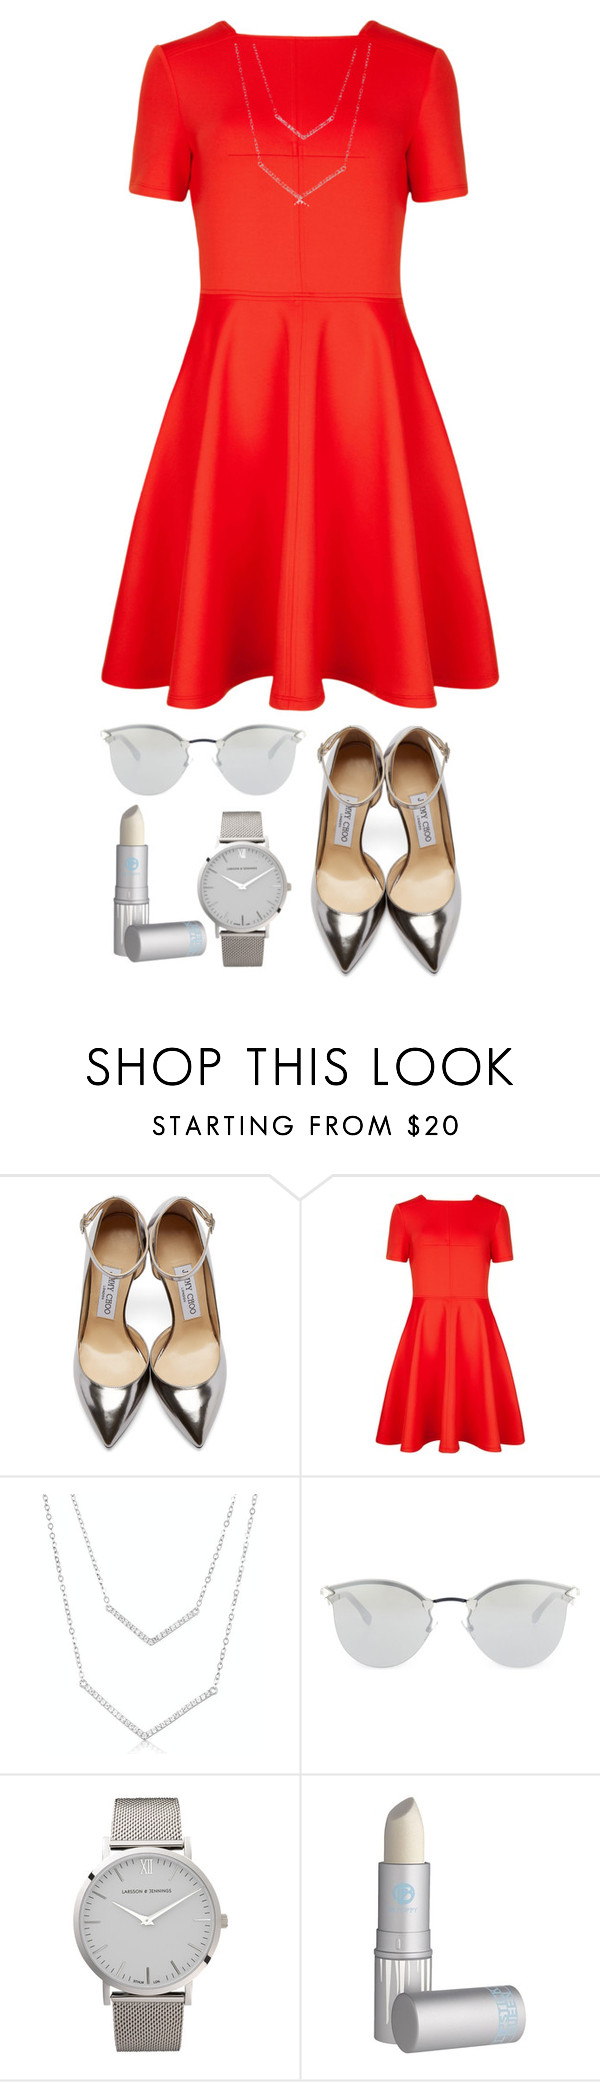 """""""Untitled #32"""" by cerys-james ❤ liked on Polyvore featuring Jimmy Choo, Ted Baker, Fendi, Larsson & Jennings and Lipstick Queen"""